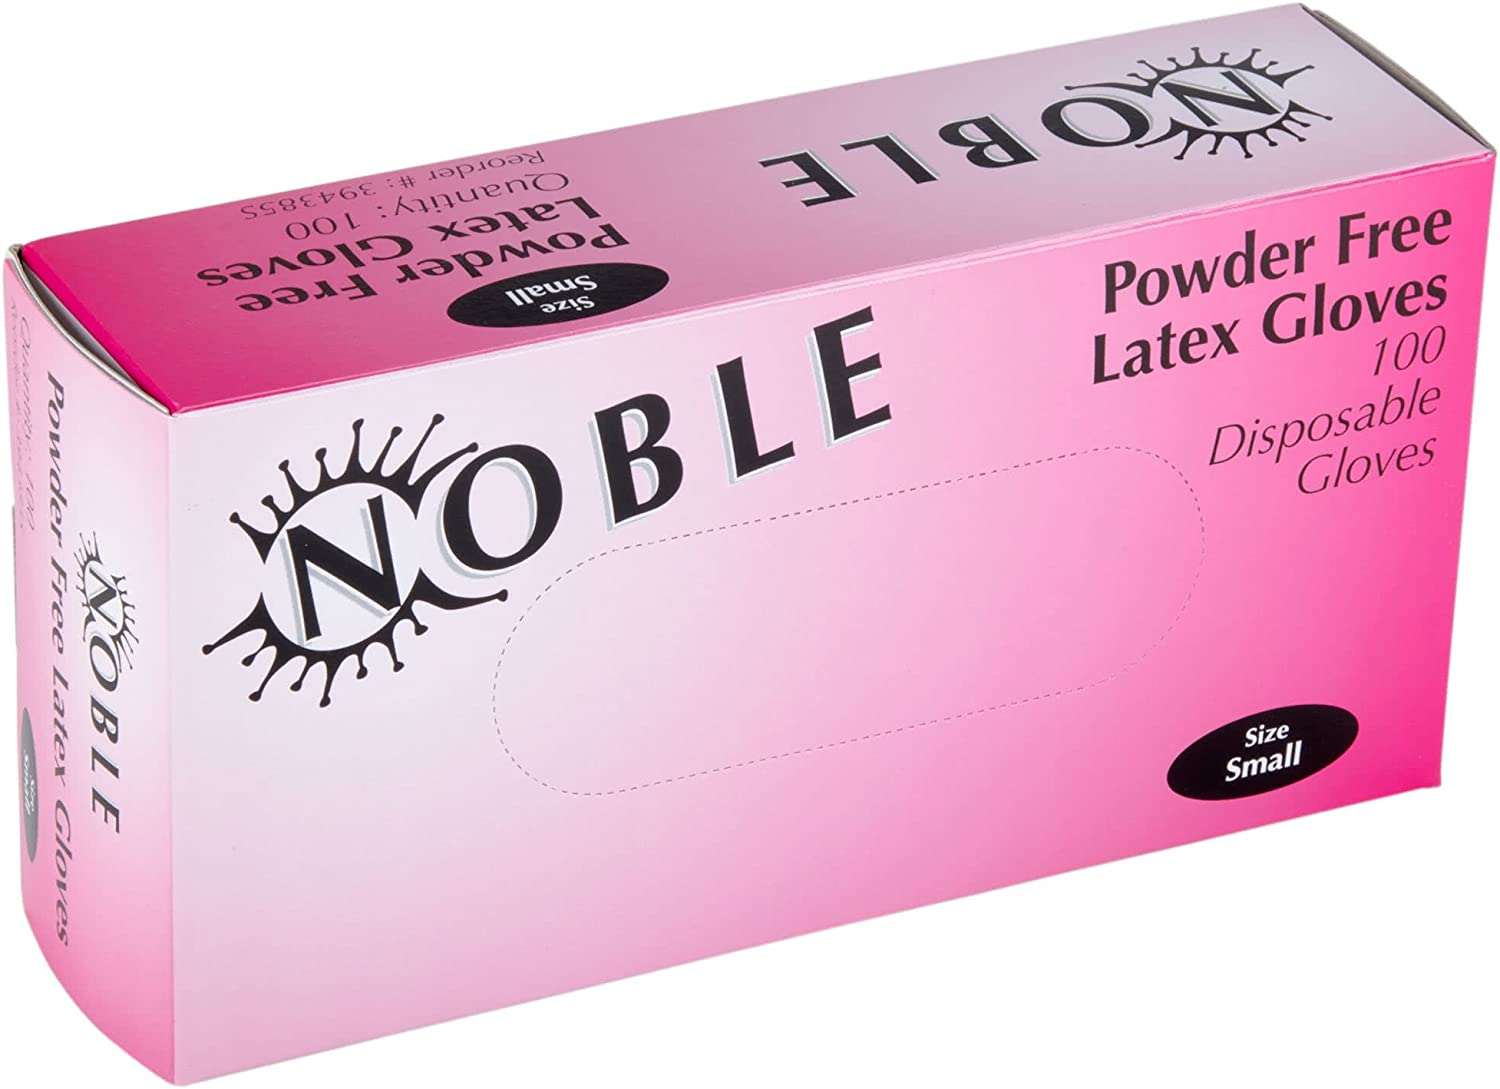 Noble 4.5 Mil Thick Powder-Free Disposable Latex Gloves For Food Service, 100-Pack, Small